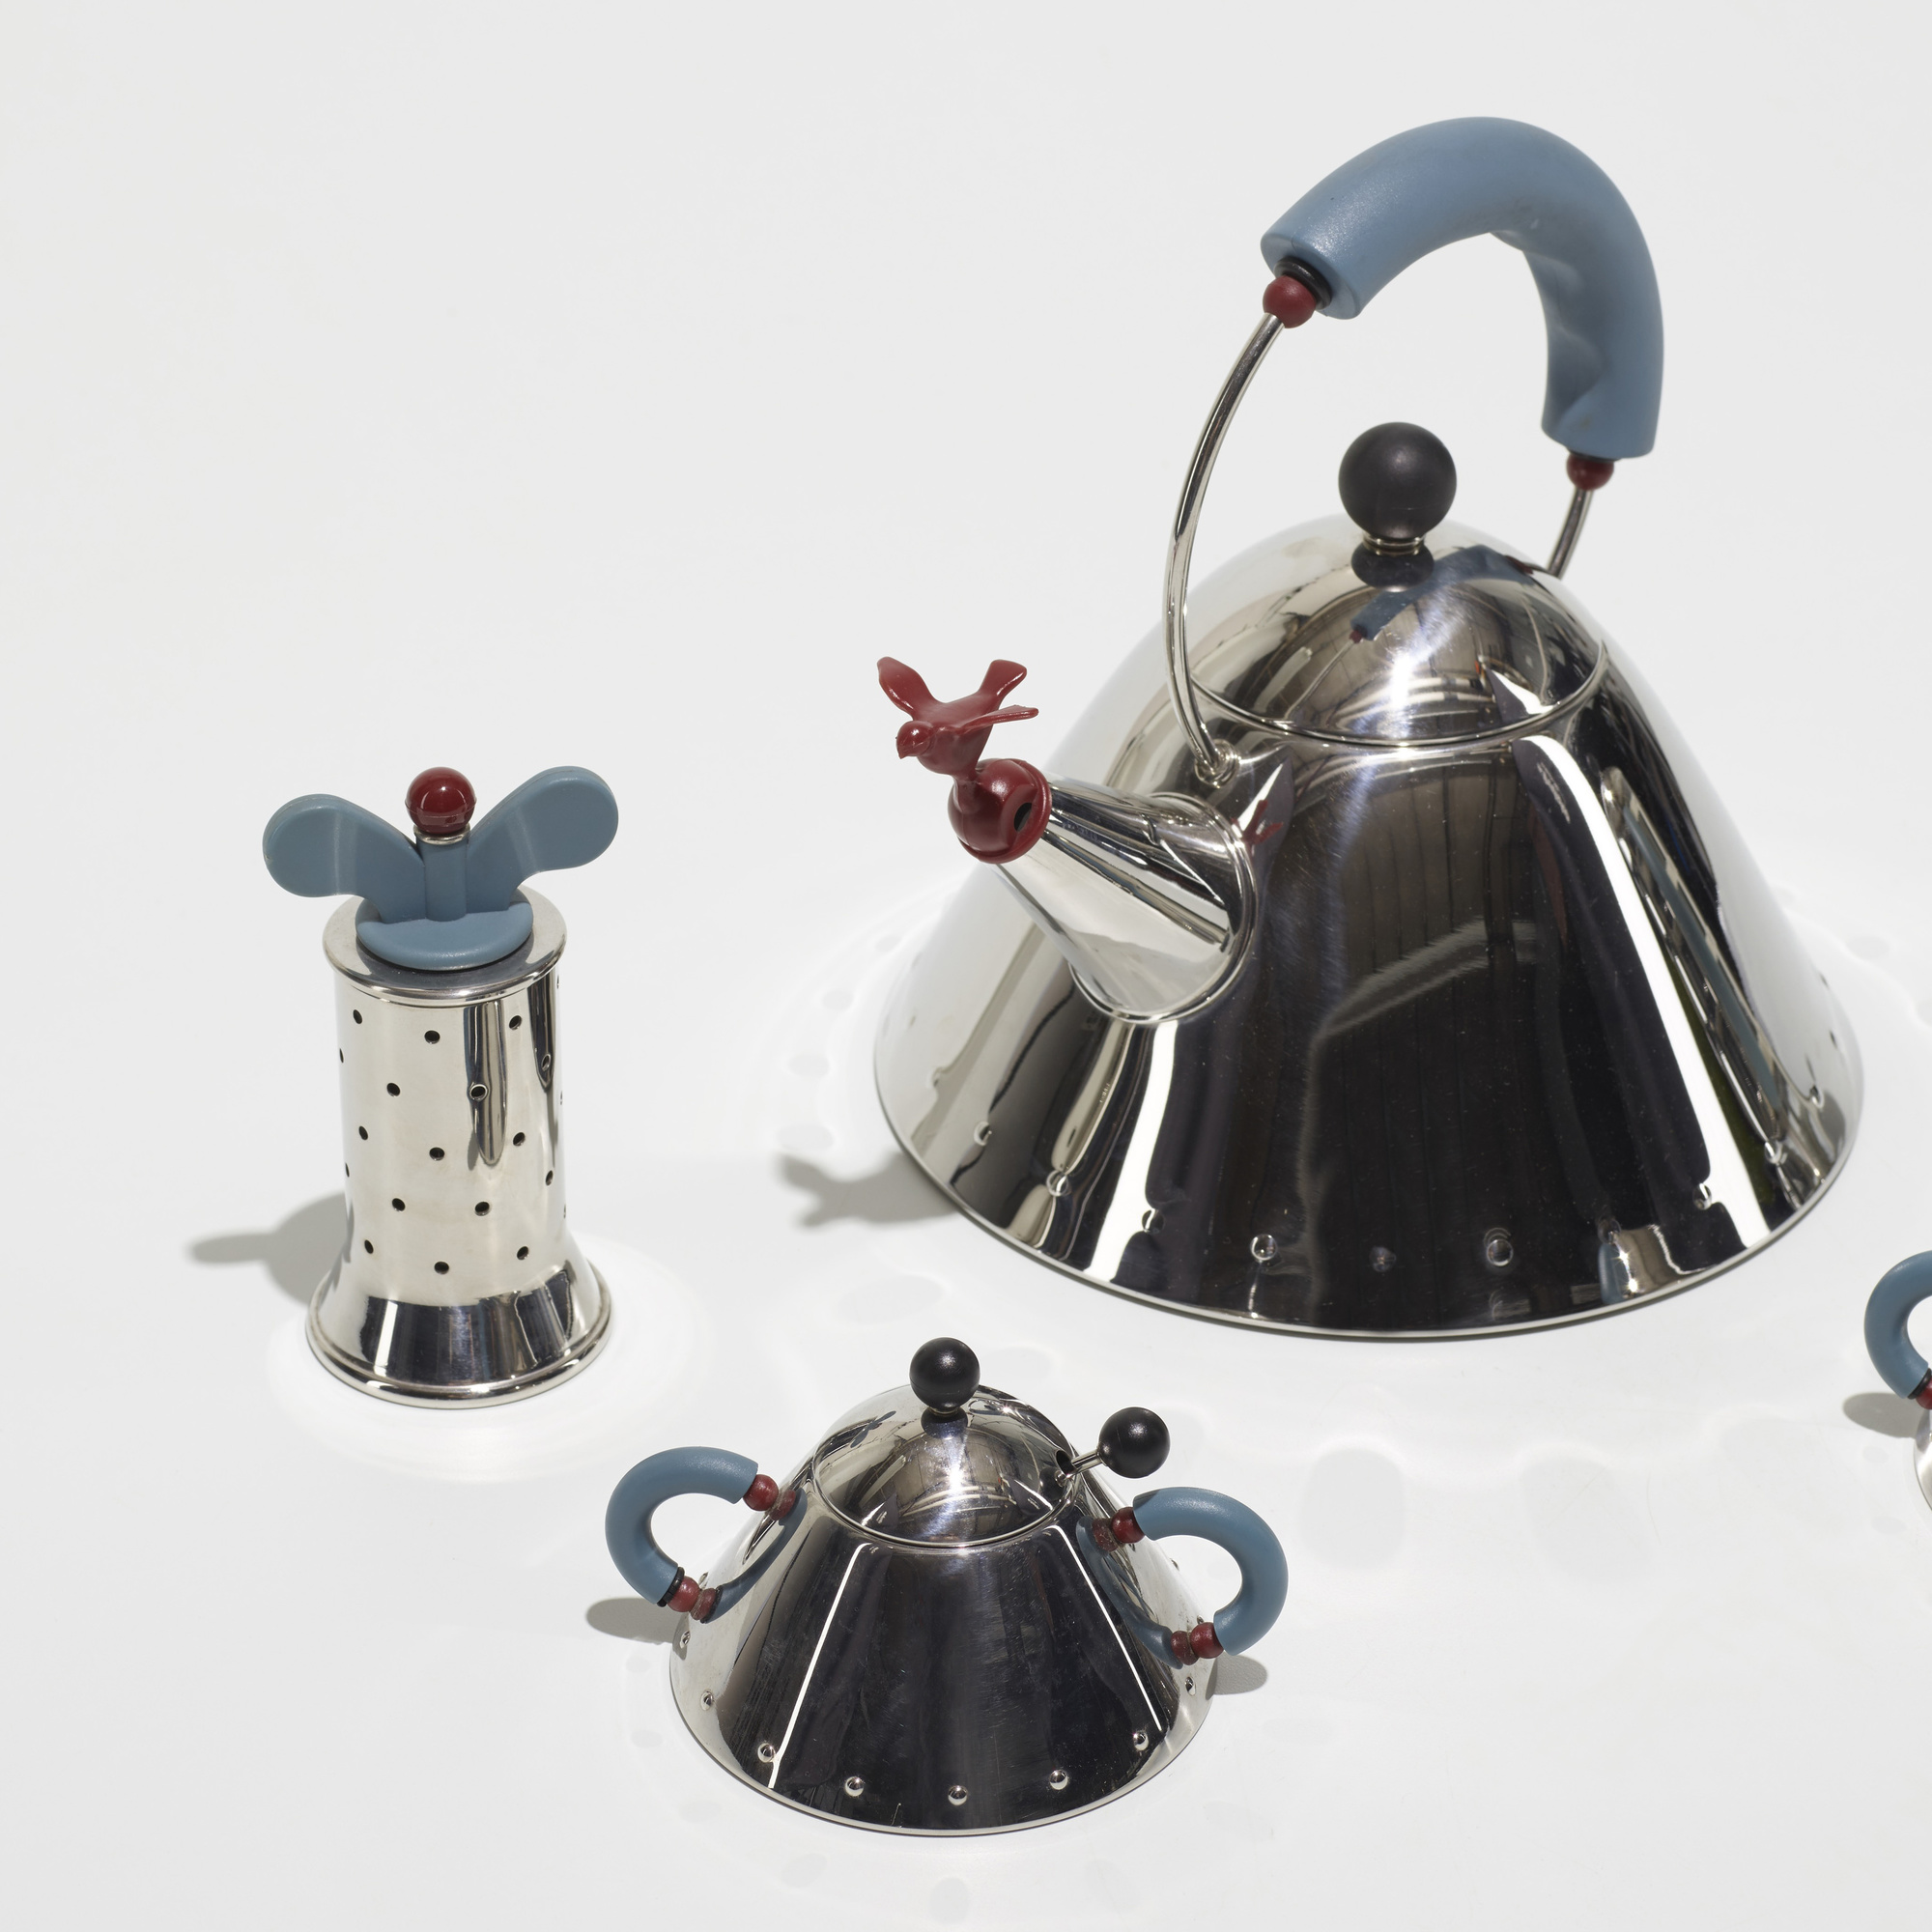 279: Michael Graves / coffee and tea service (2 of 2)